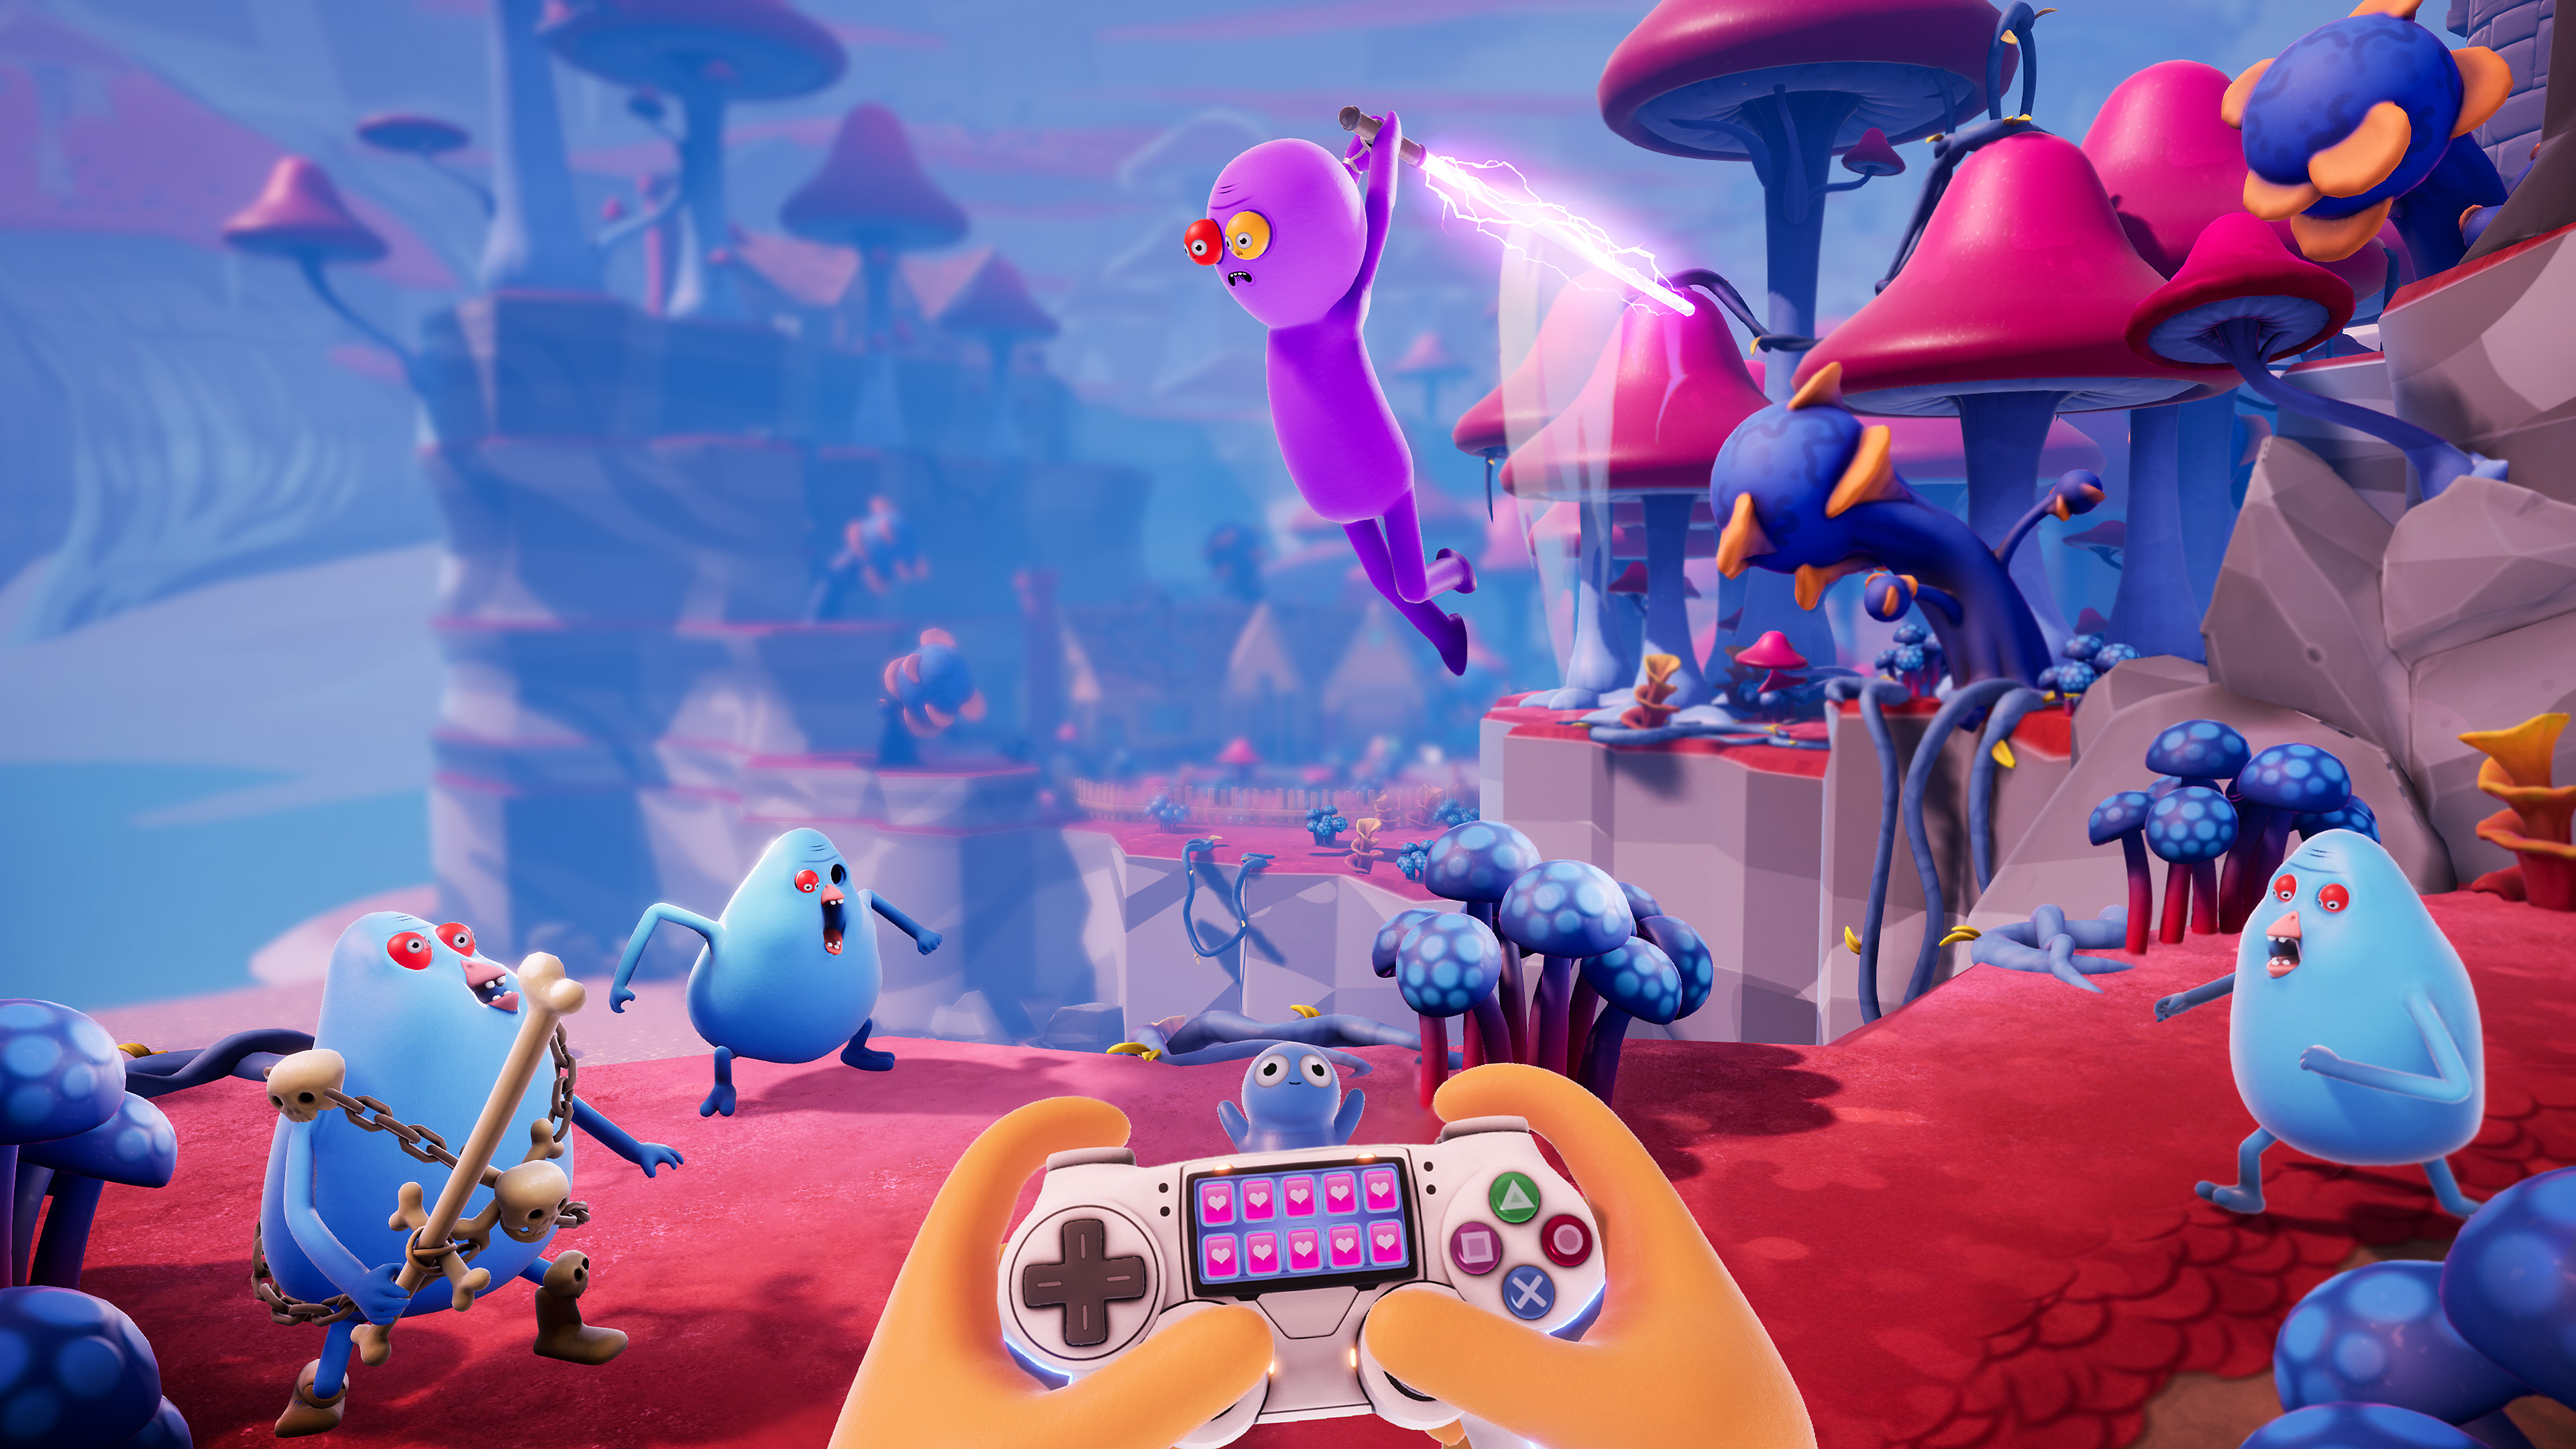 Captura de tela de Trover Saves the Universe: Trover entra em ação